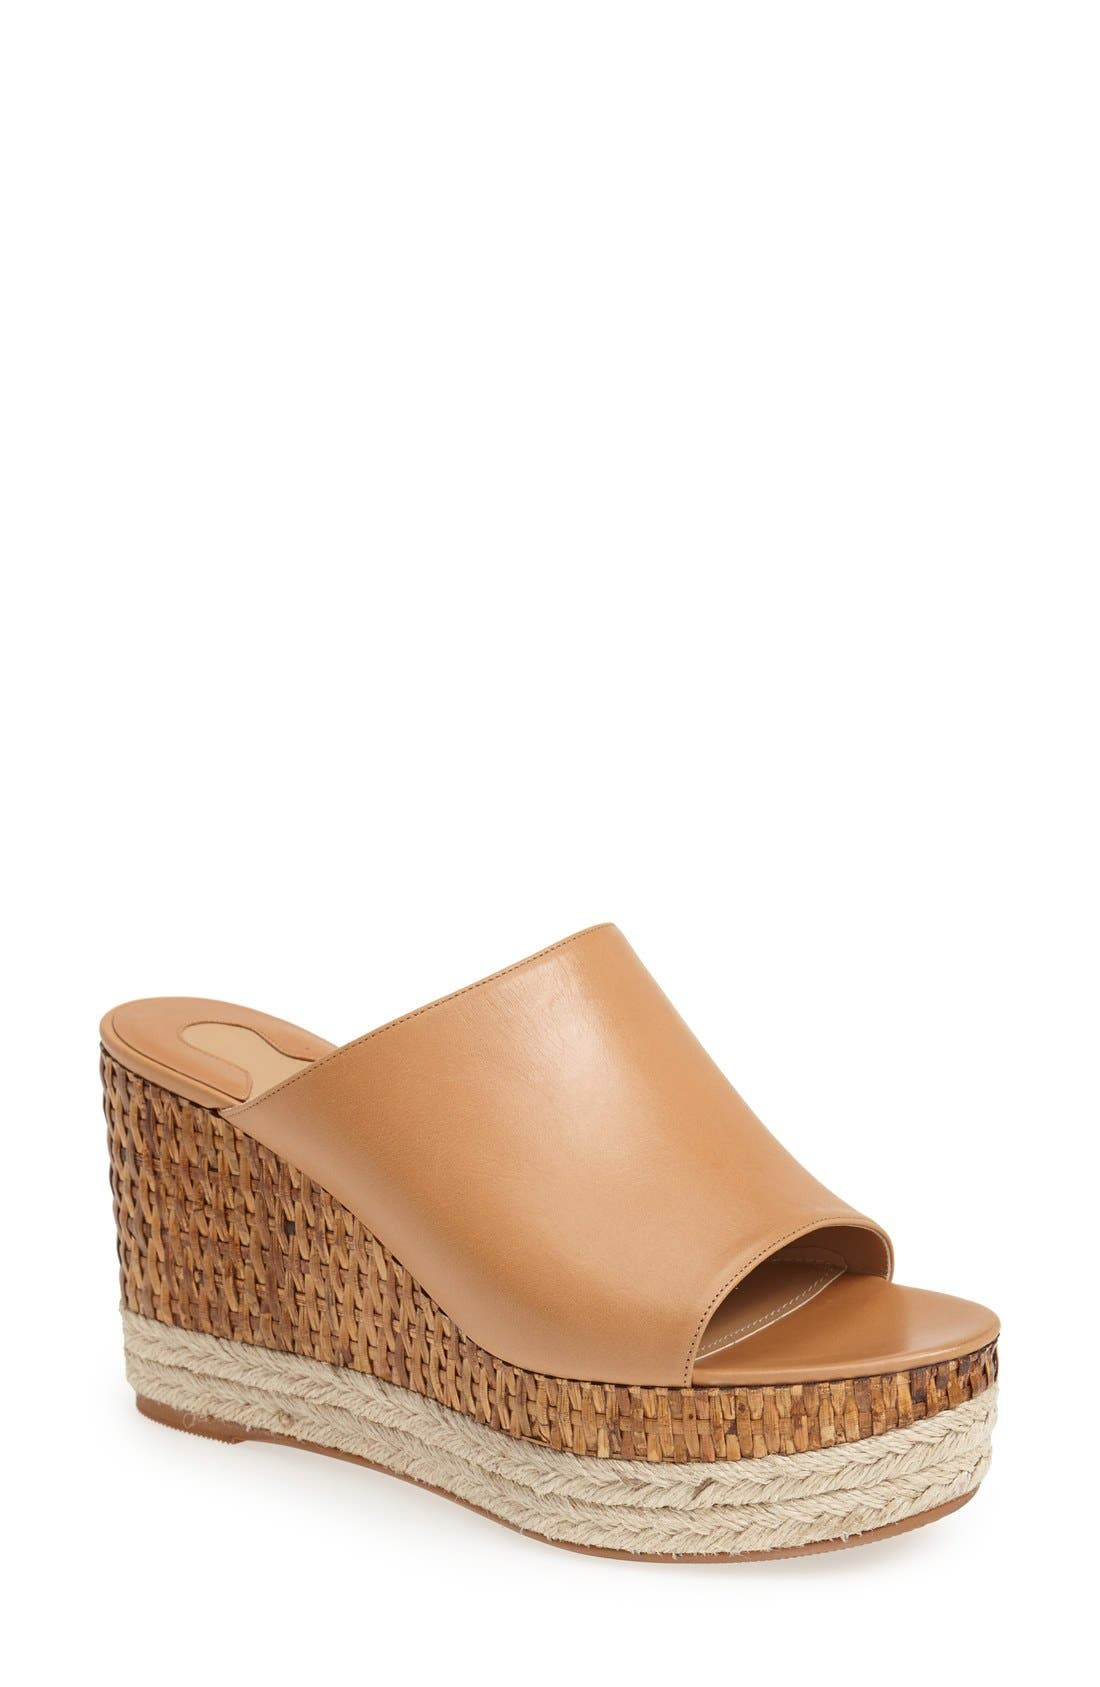 Main Image - Salvatore Ferragamo 'Maimei' Wedge Sandal (Women)